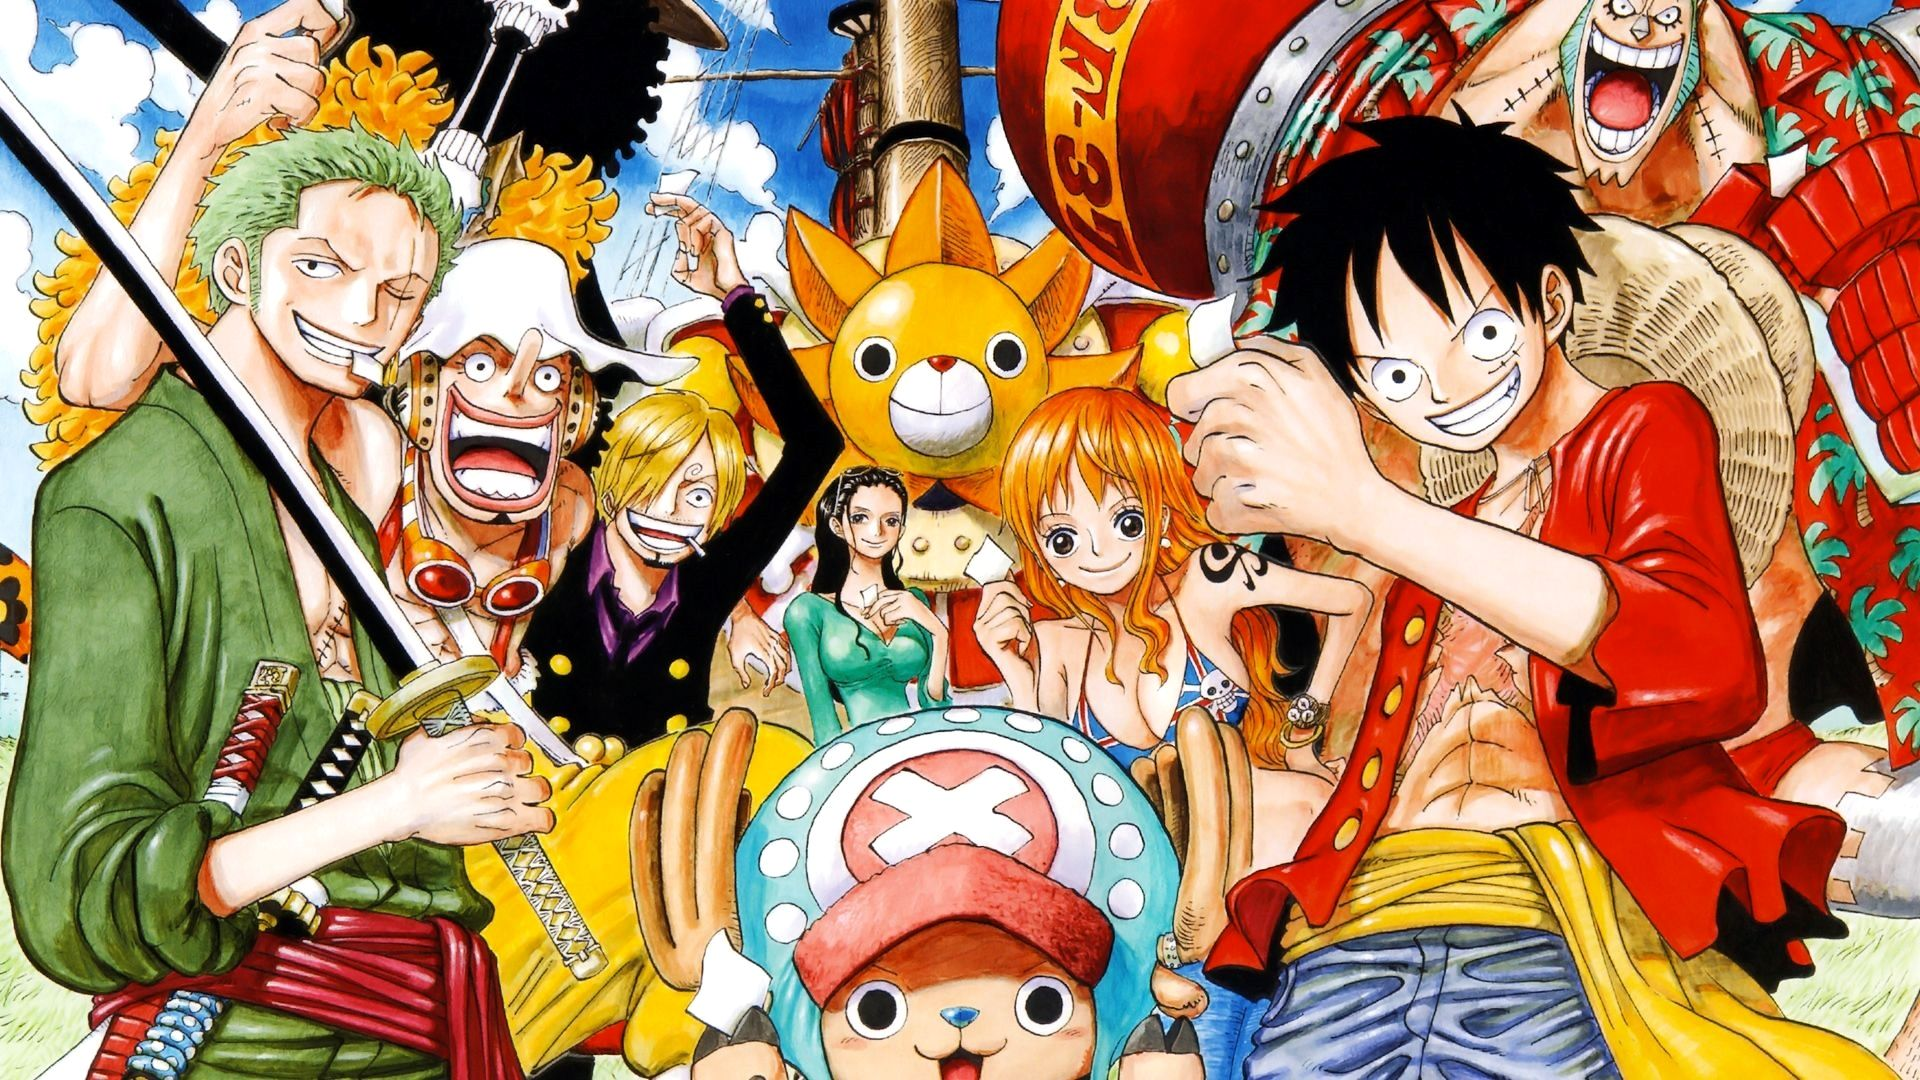 86 one piece wallpapers download images in full hd, 2k and 4k sizes. Wallpaper 4K Pc One Piece Trick | One piece anime, Mangá ...